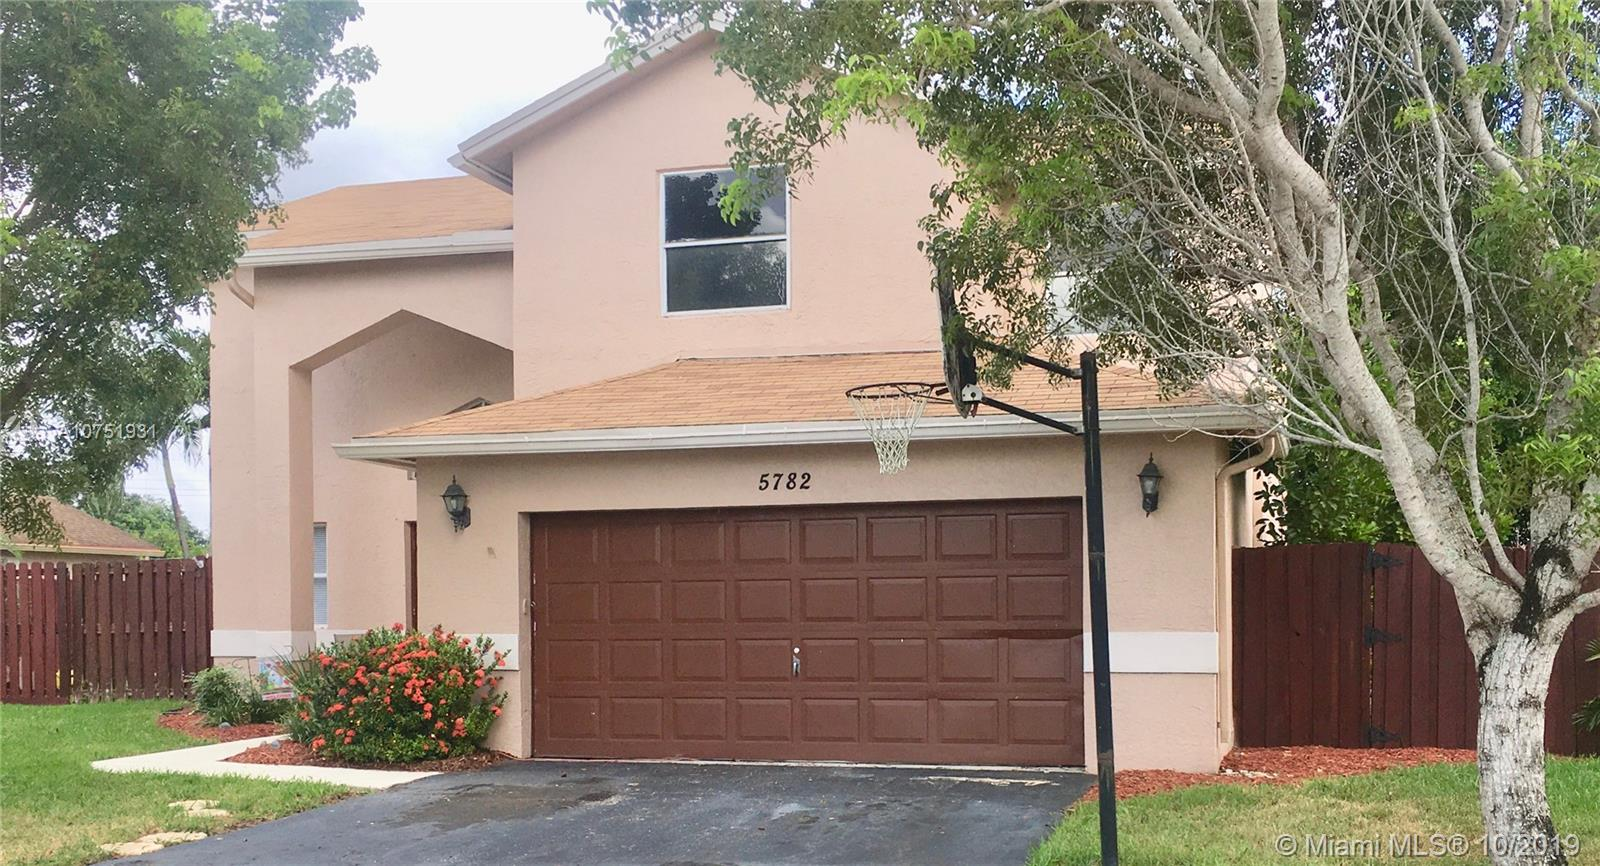 5782 SW 55th Ave, Davie, FL 33314